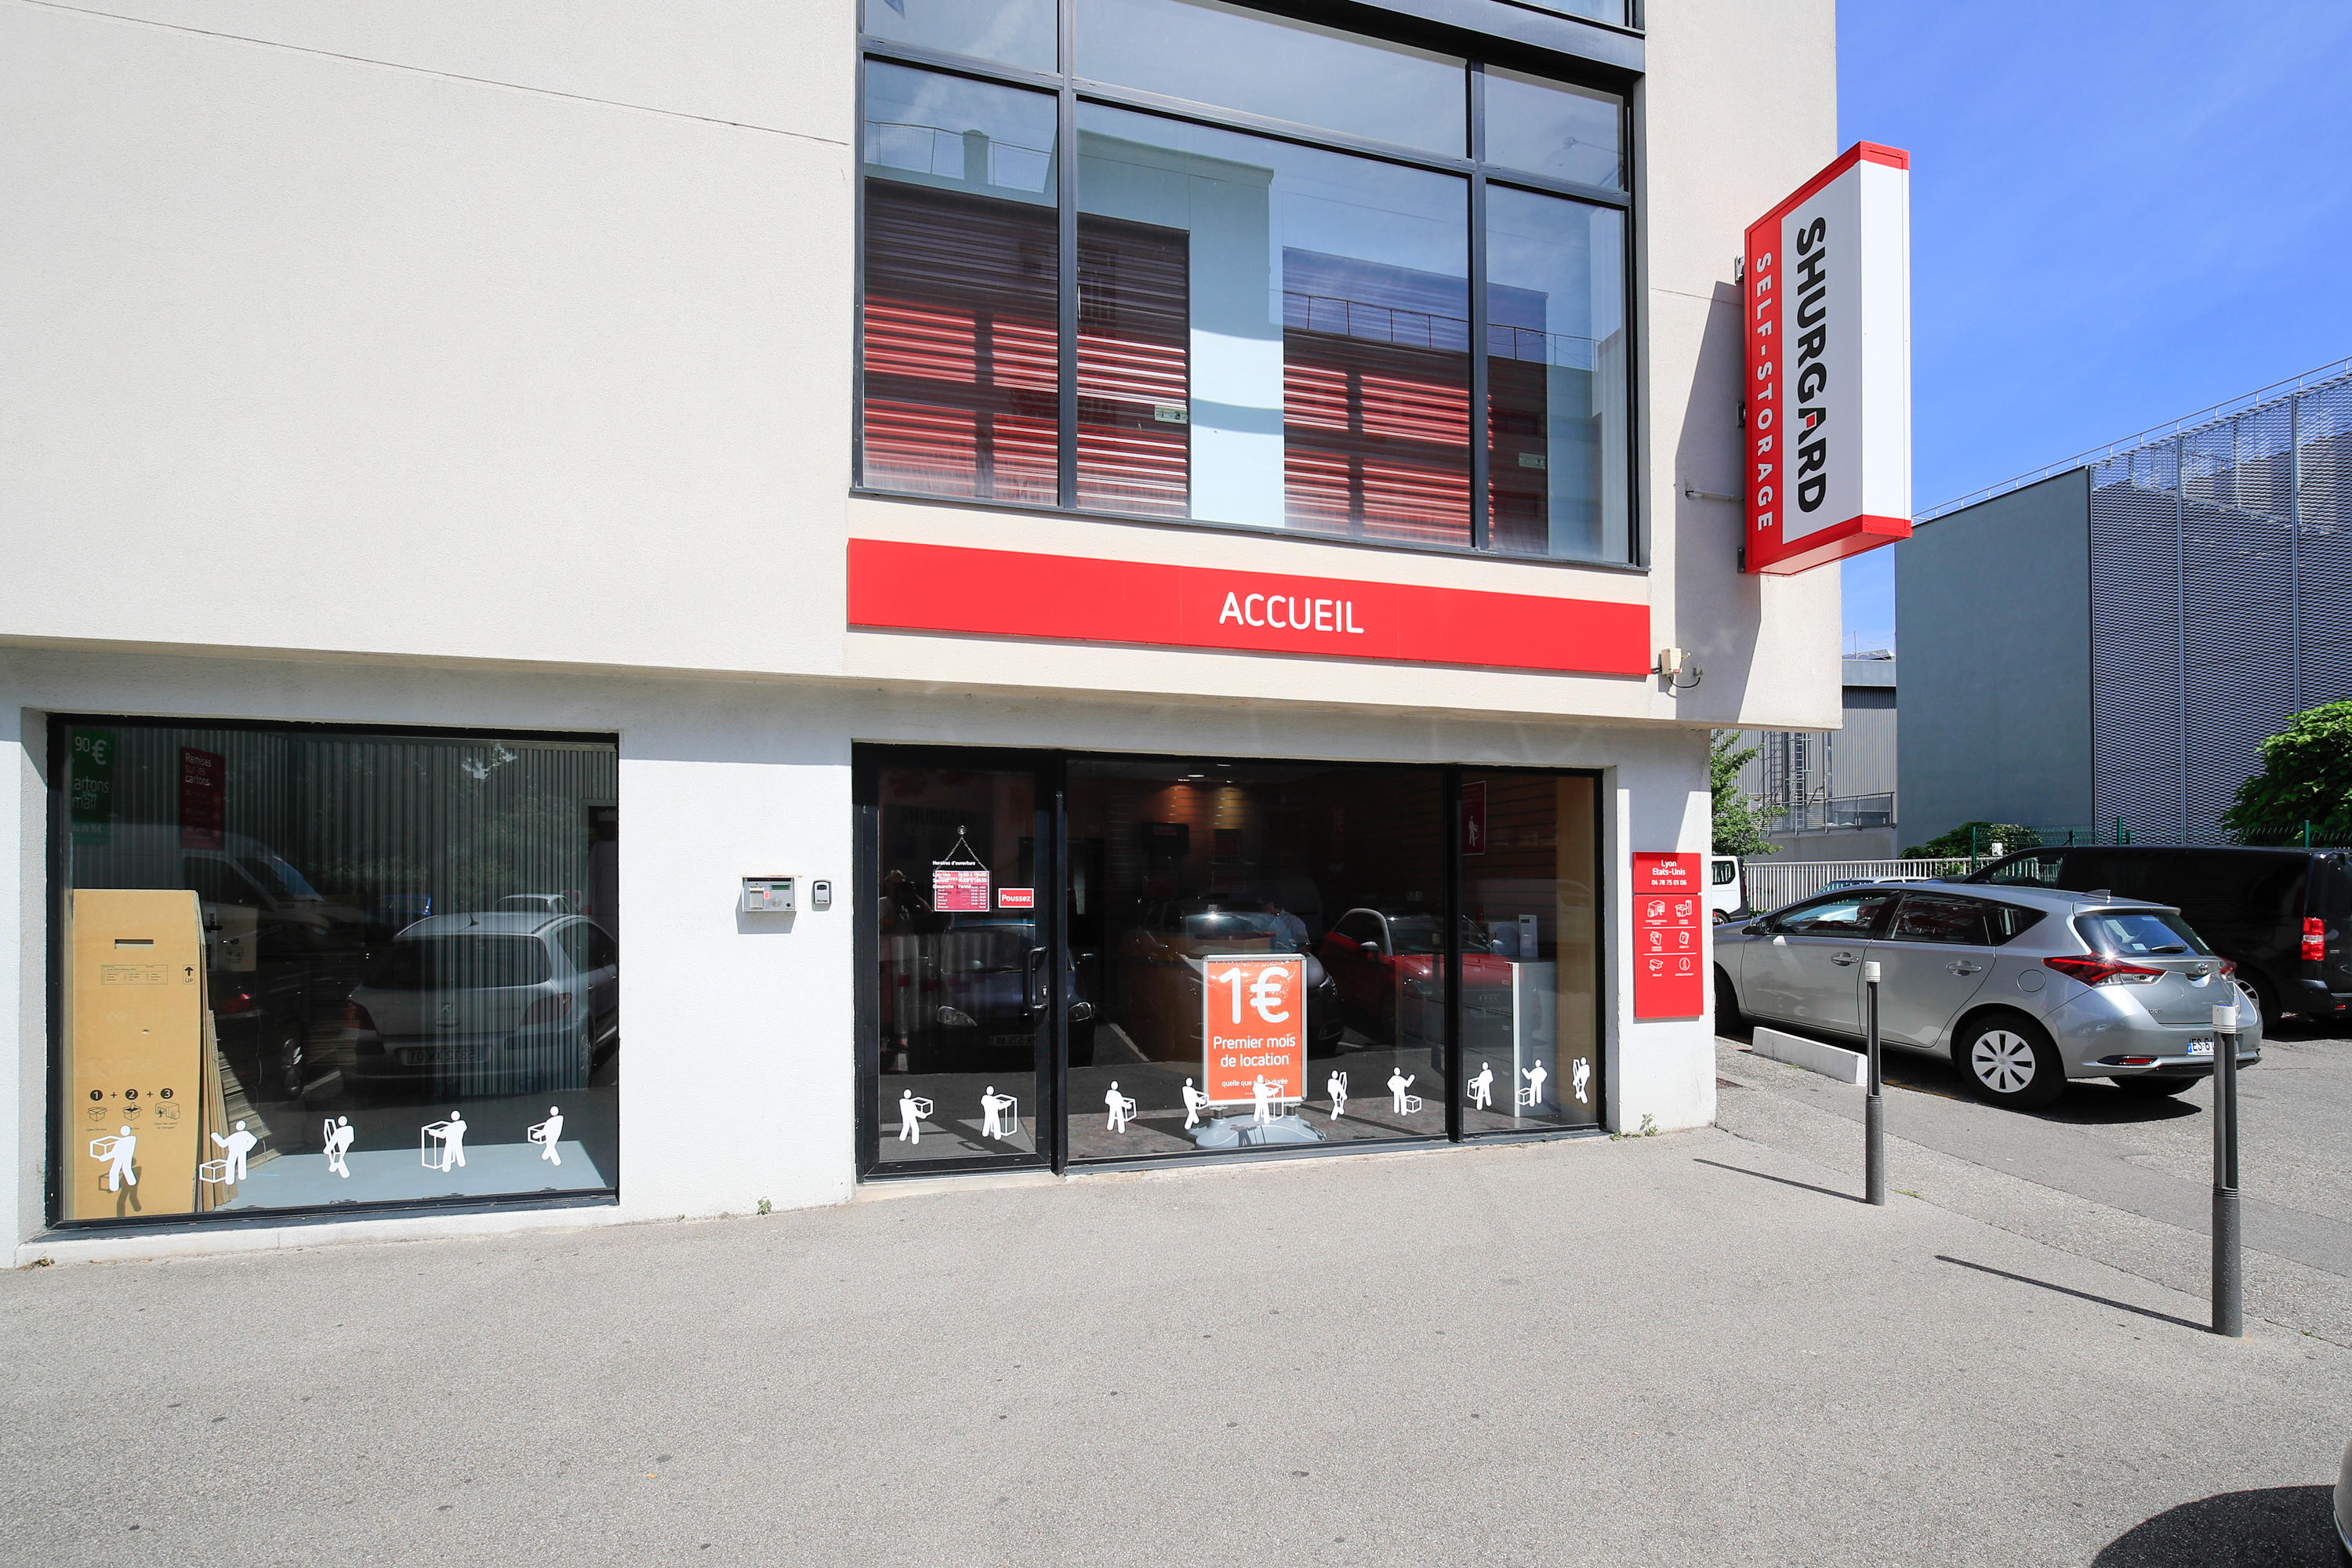 Shurgard Self-Storage Lyon Etats-Unis